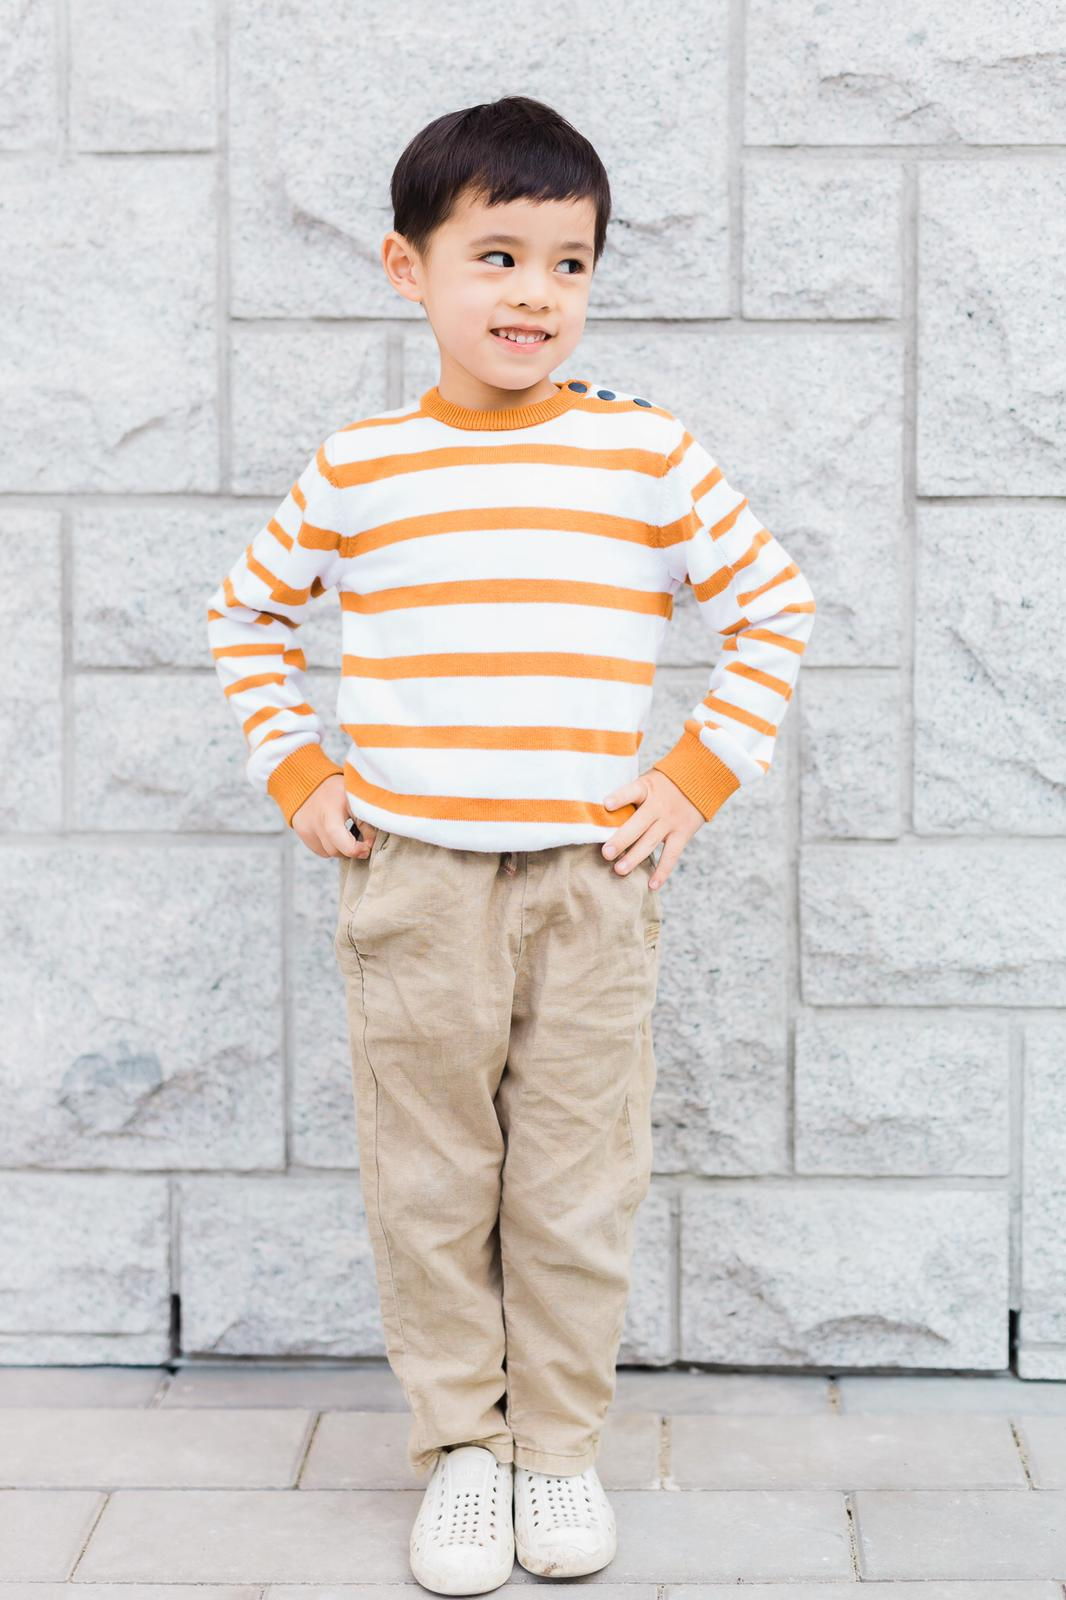 SEEMORE Kids Model Hewitt